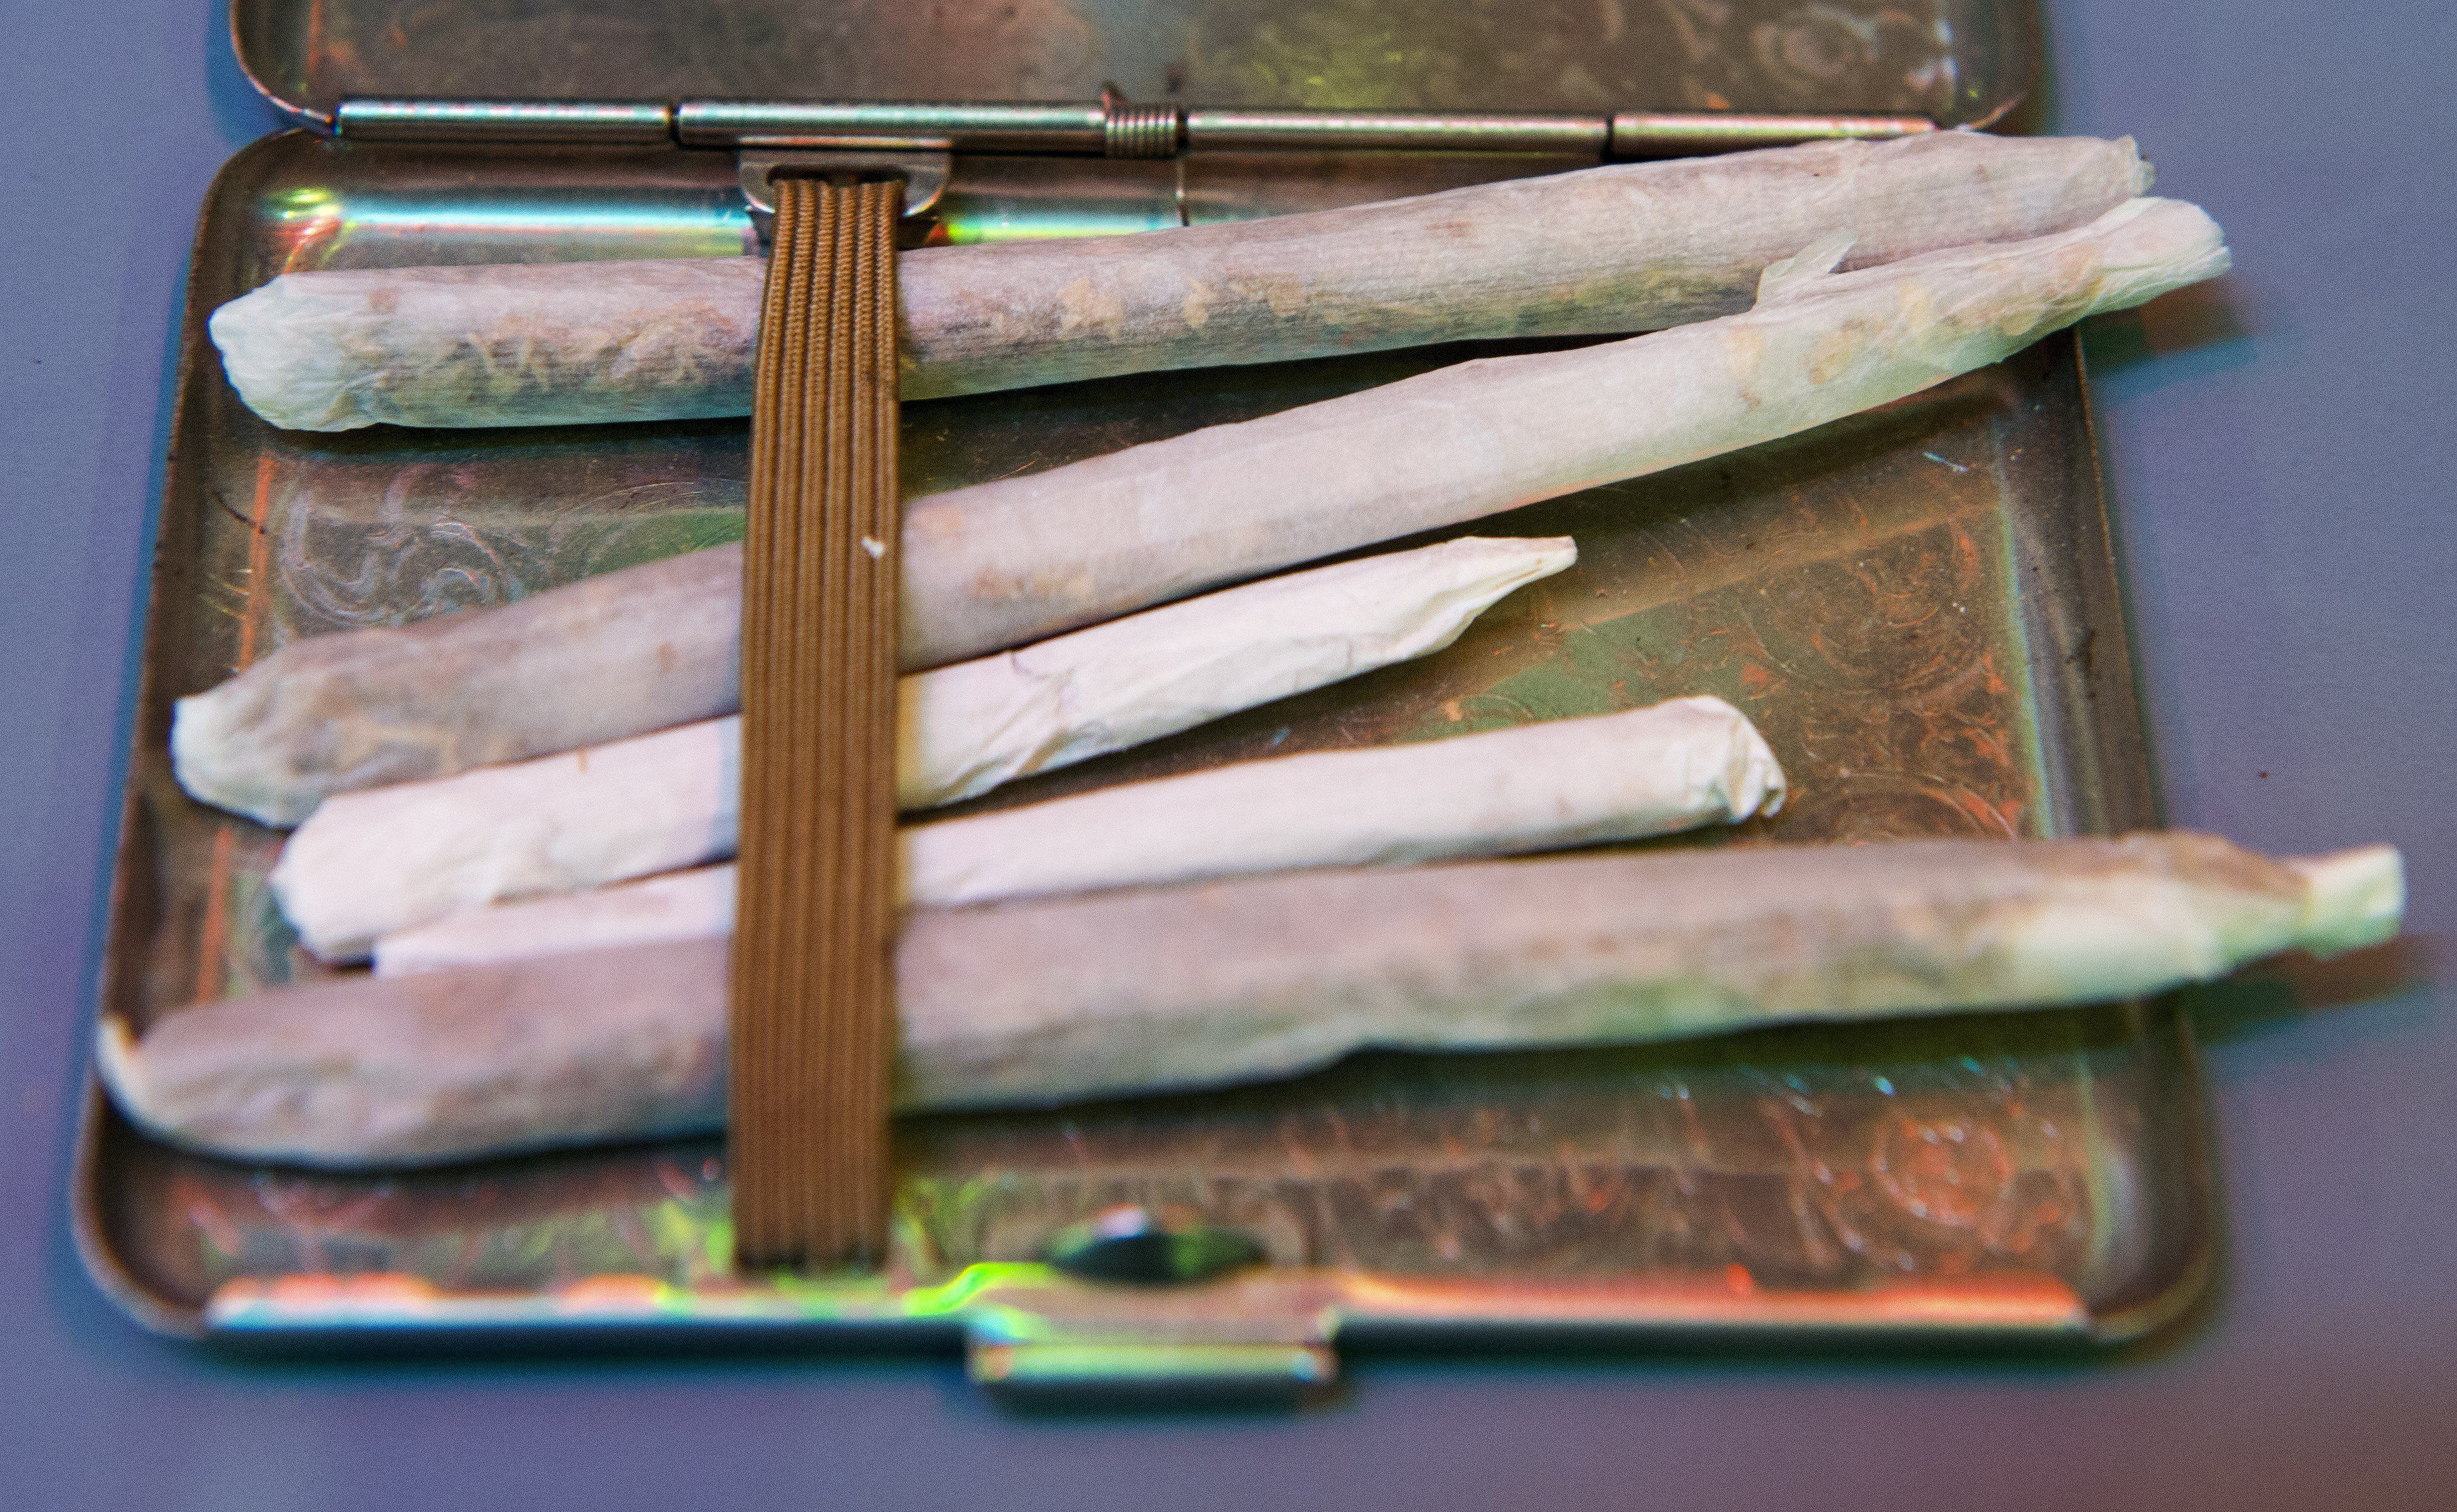 Marijuana cigarettes are on display at the Drug Enforcement Agency Museum (DEA) in Arlington, Virginia on August 25, 2015. The free museum is located next to the Pentagon and has a vast history of drug enforcement history.    AFP PHOTO/PAUL J. RICHARDS        (Photo credit should read PAUL J. RICHARDS/AFP/Getty Images)